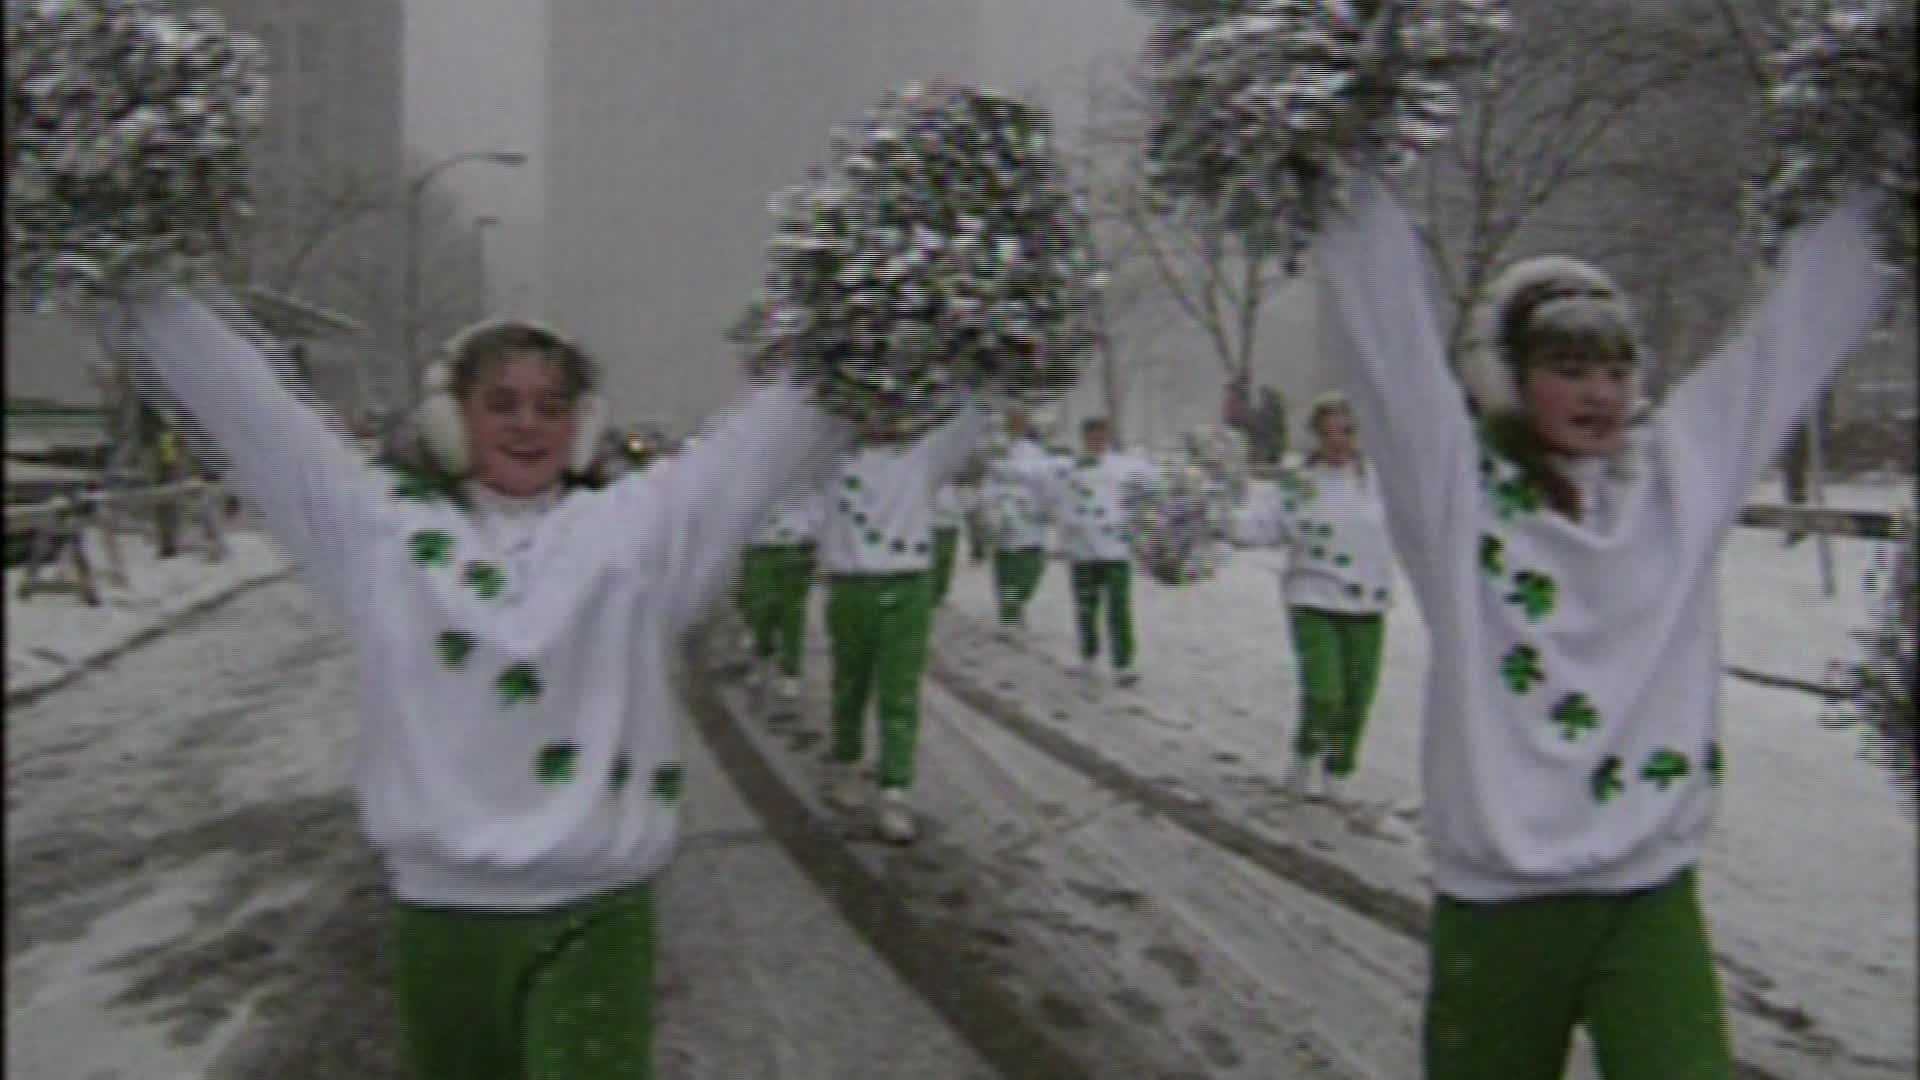 On this day: Blizzard of '93 turns parade from green to white